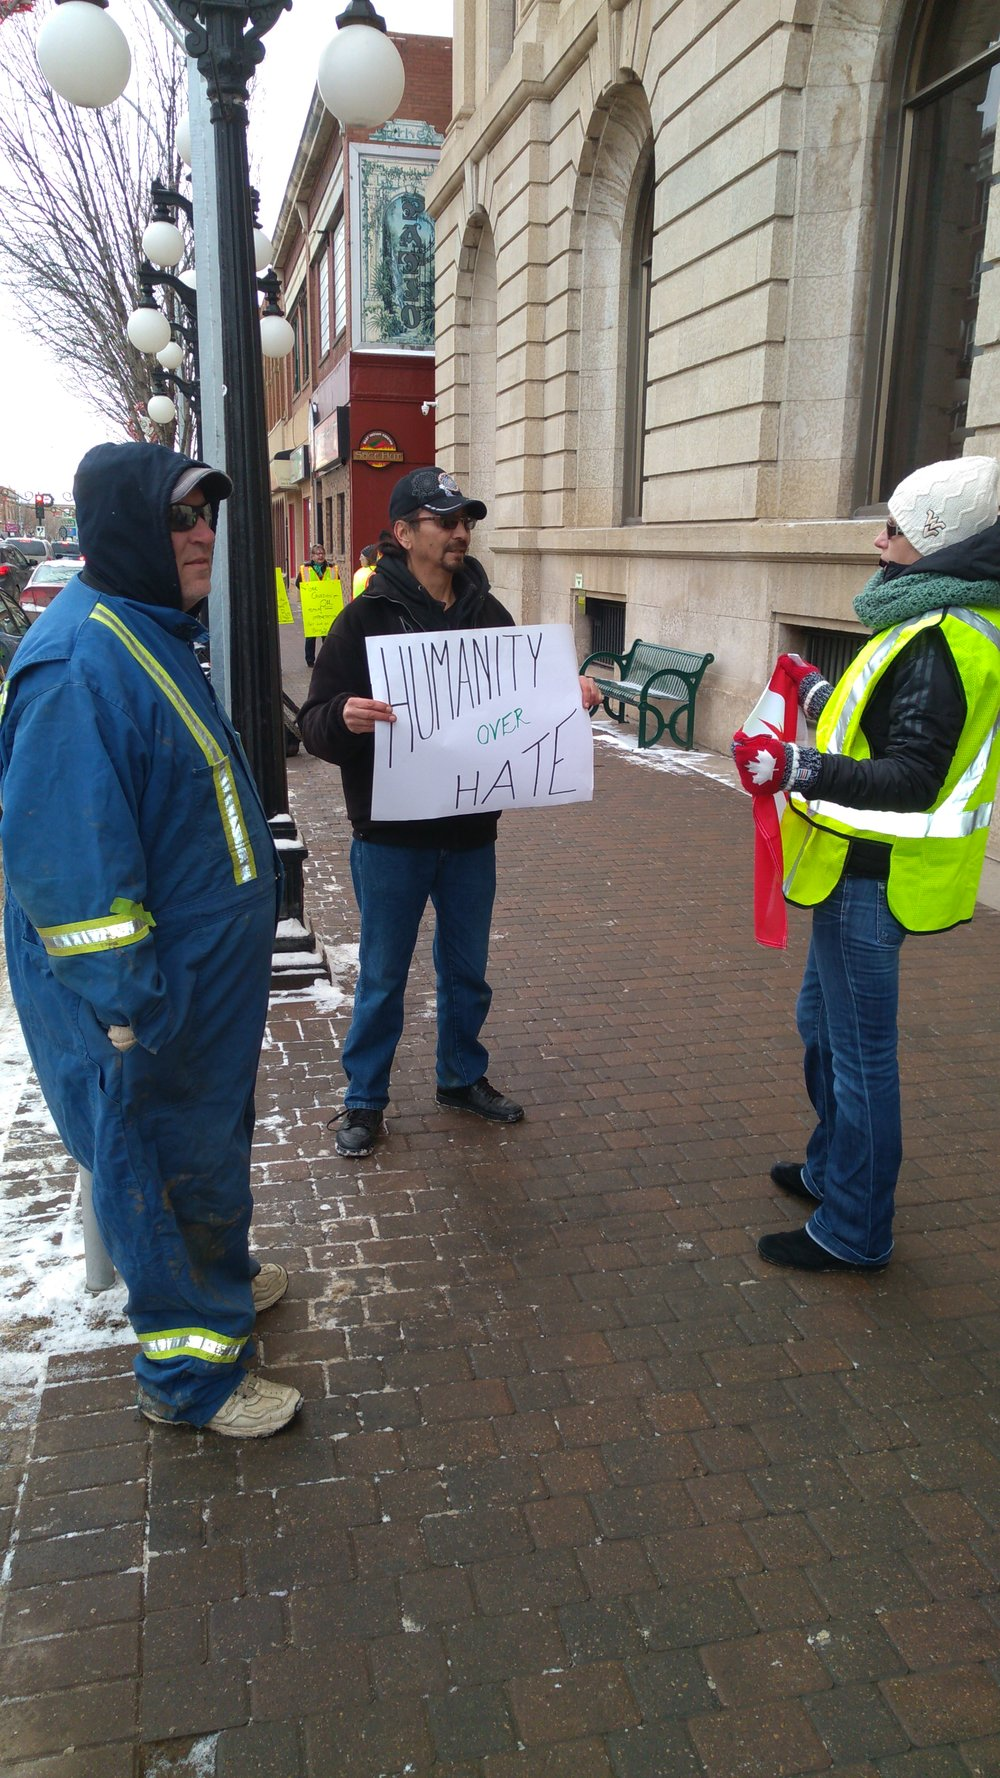 Differences of opinion had people debating in front of City Hall